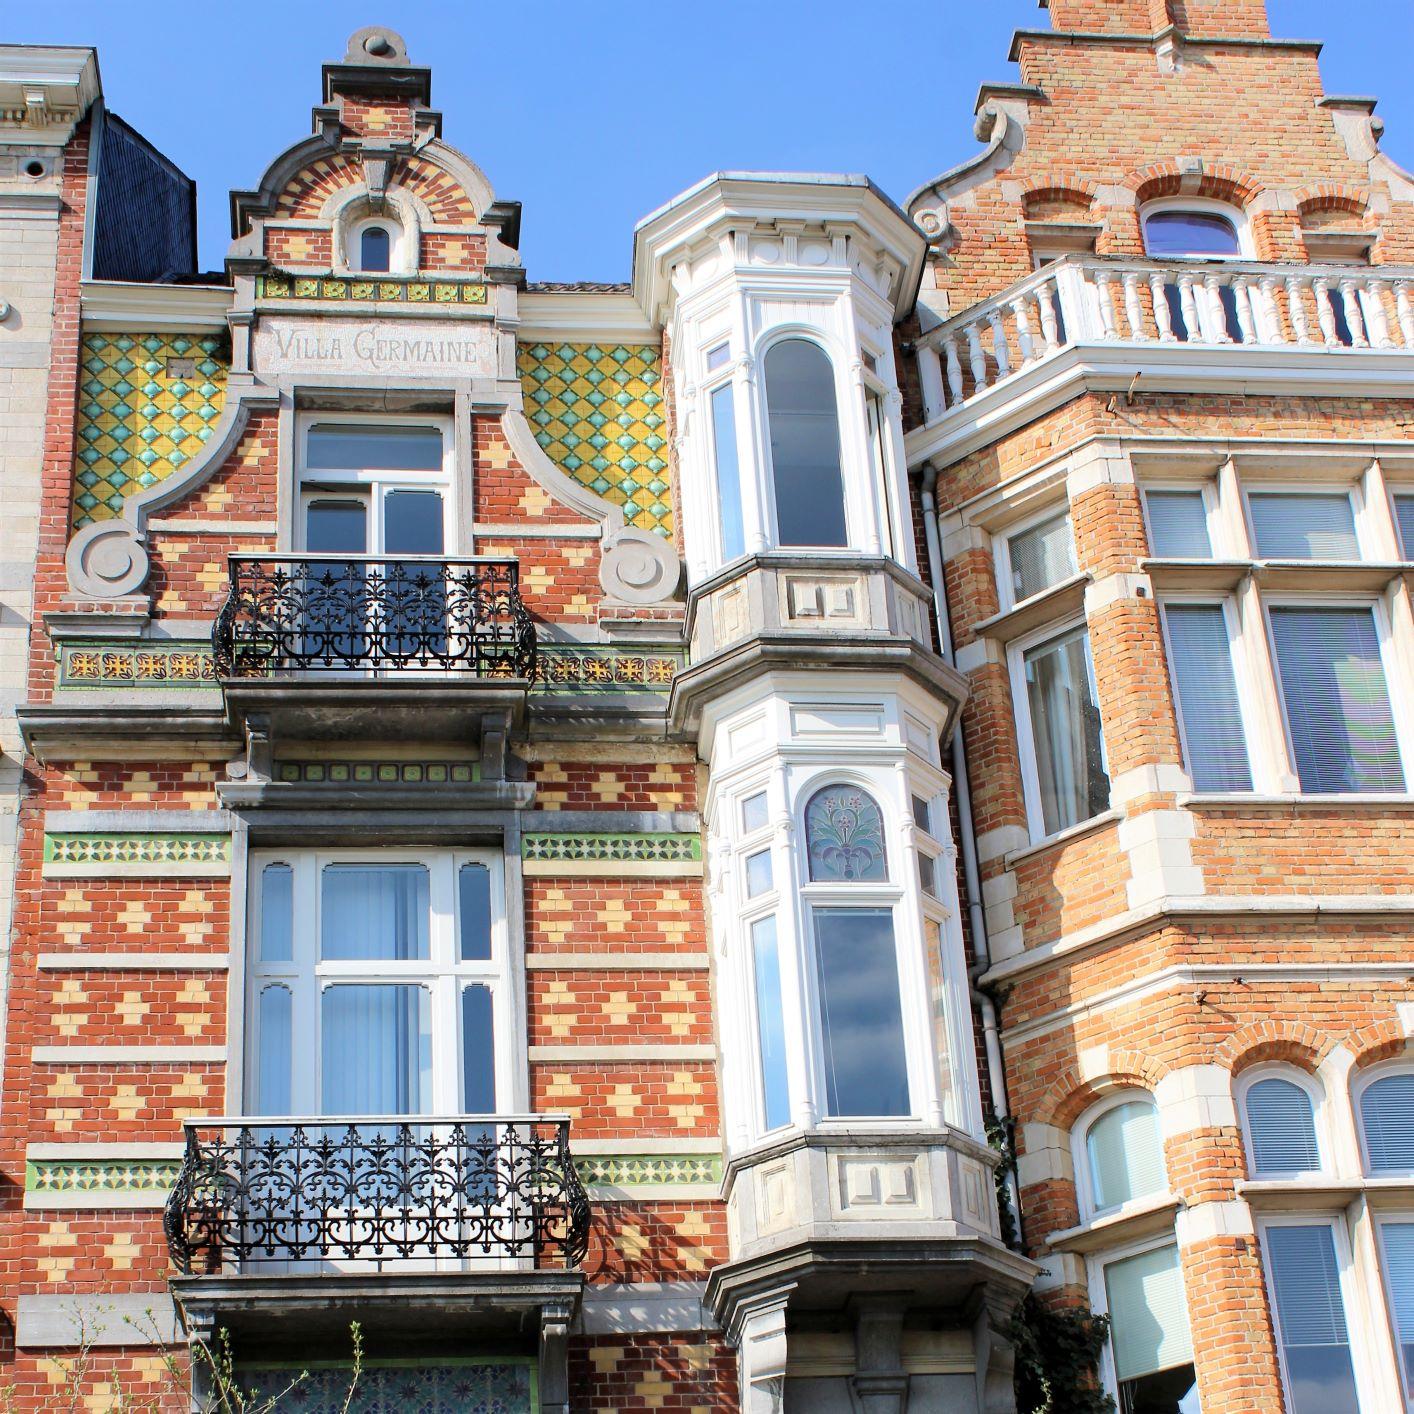 A Tour of Art Nouveau Architecture in Brussels